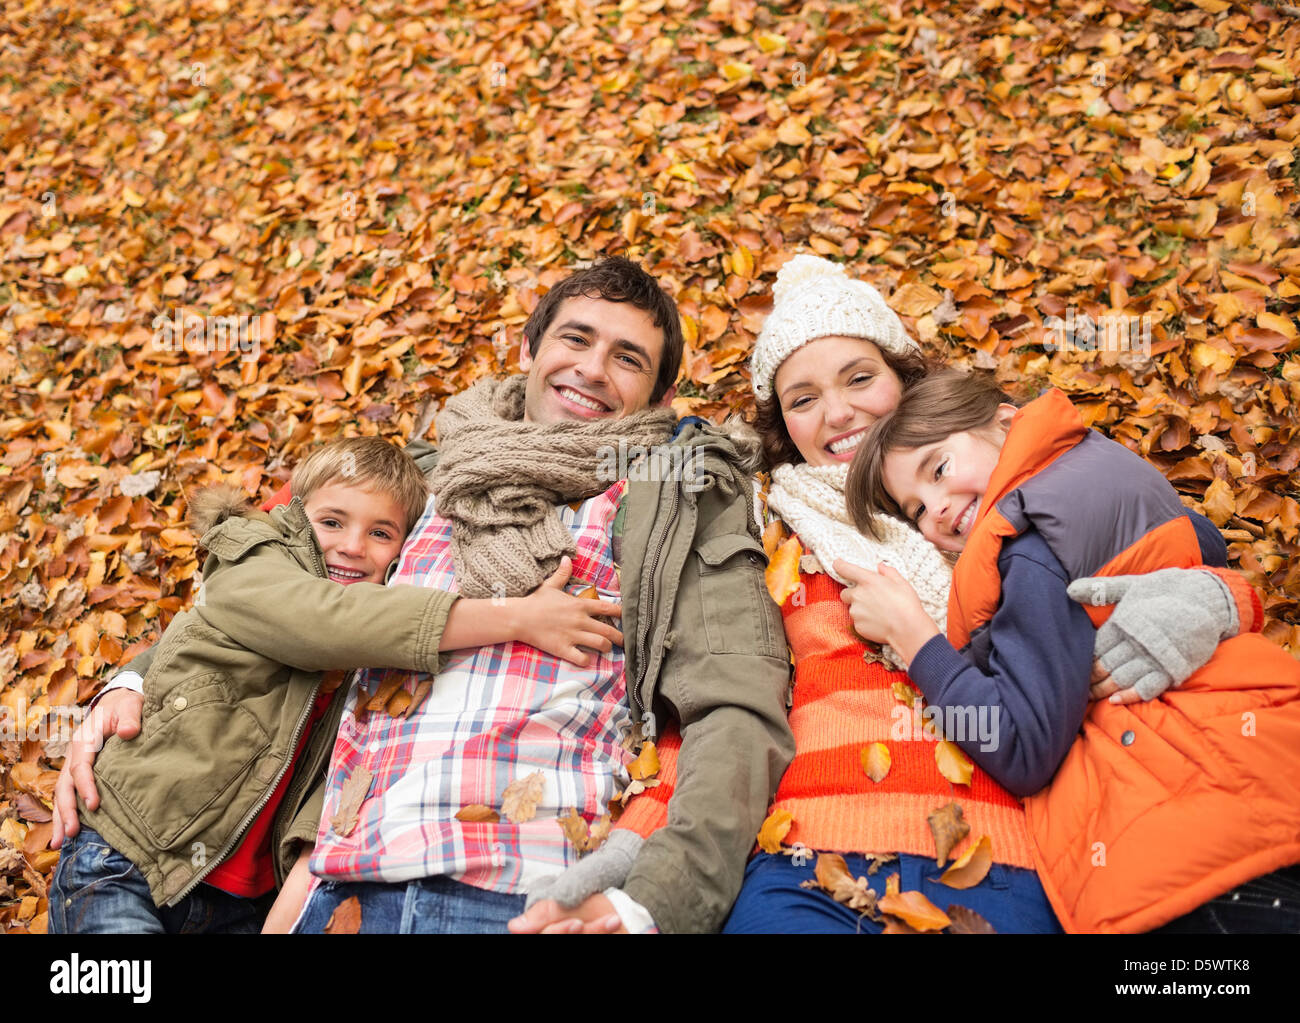 Smiling family laying in autumn leaves - Stock Image